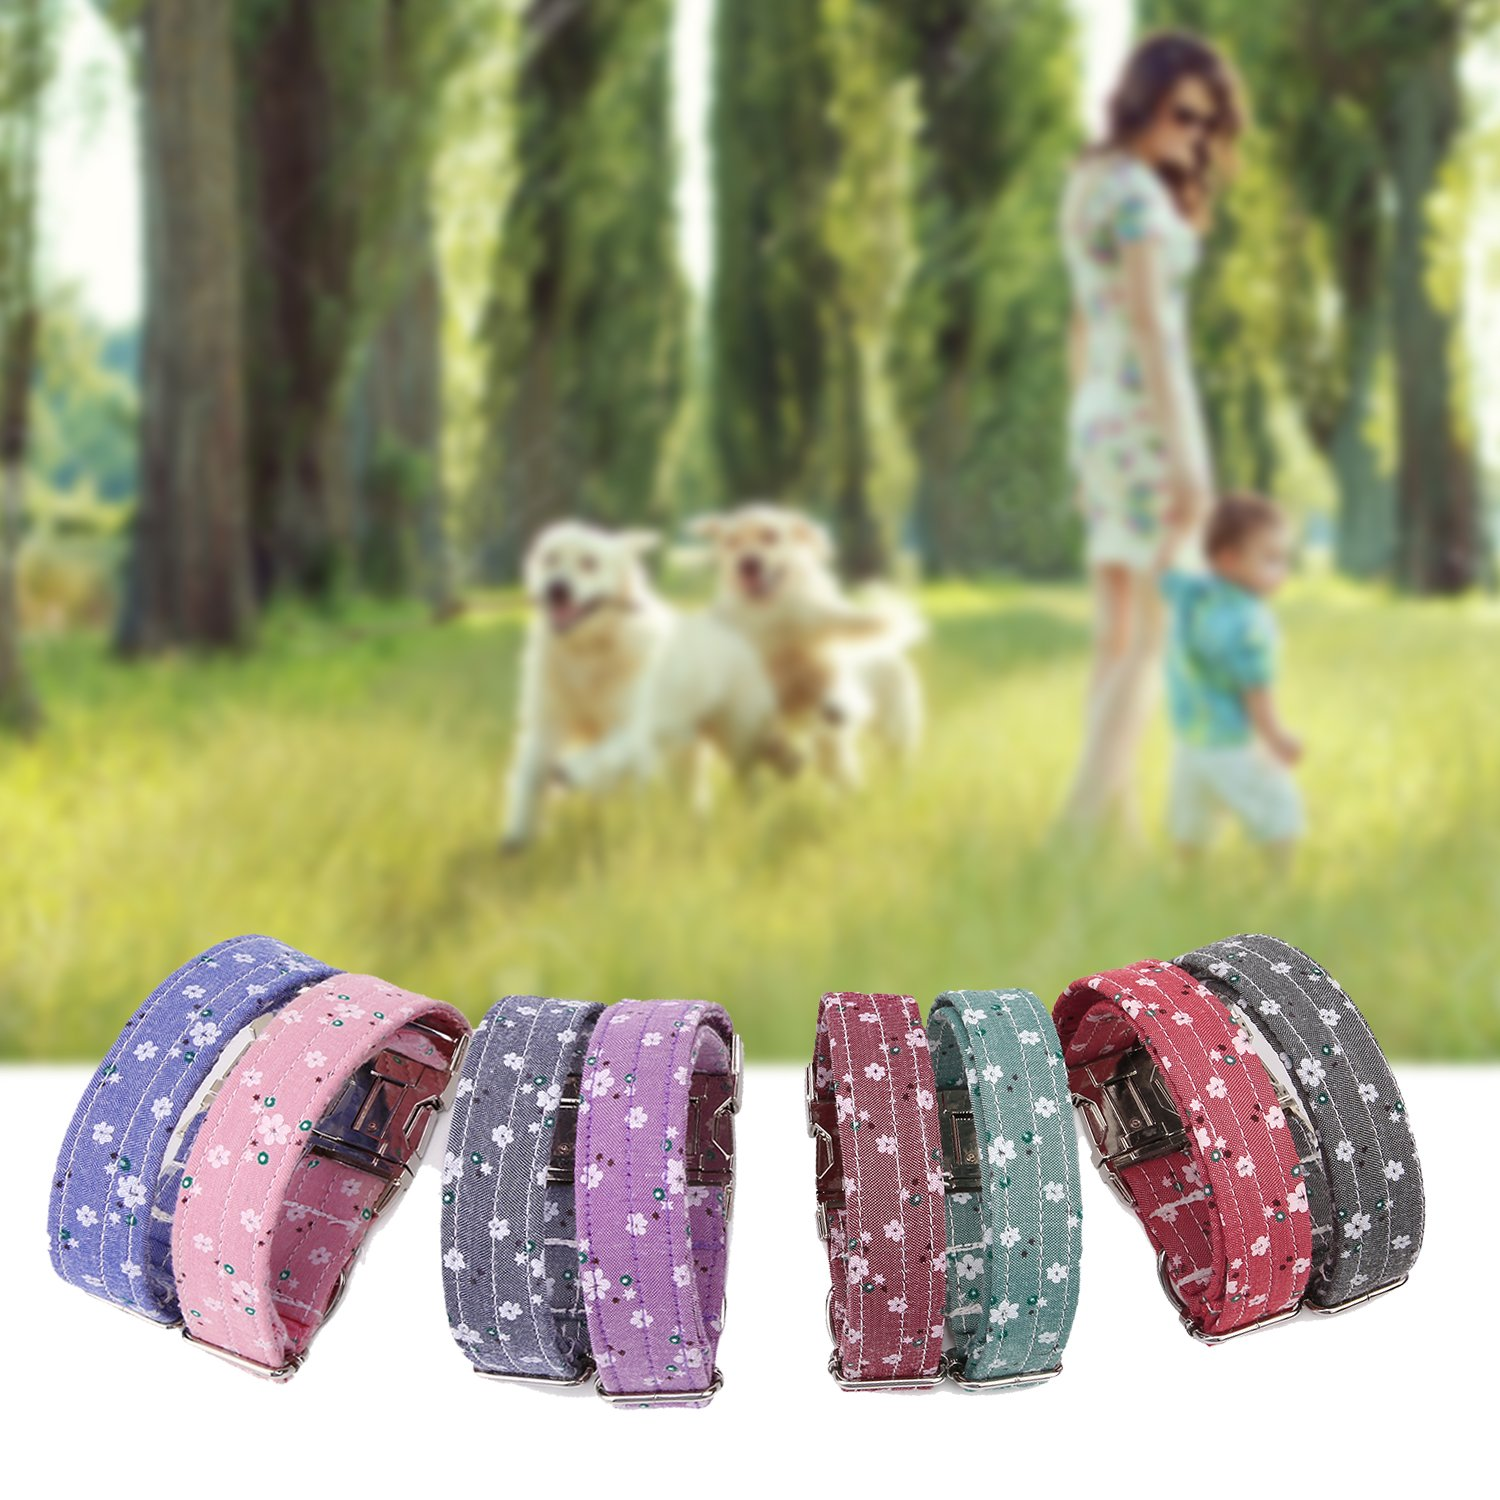 Personalized Dog Collars, Custom Engraved with Pet Name and Phone Number, Adjustable Fabric Cotton ID Collar, Neck 10\